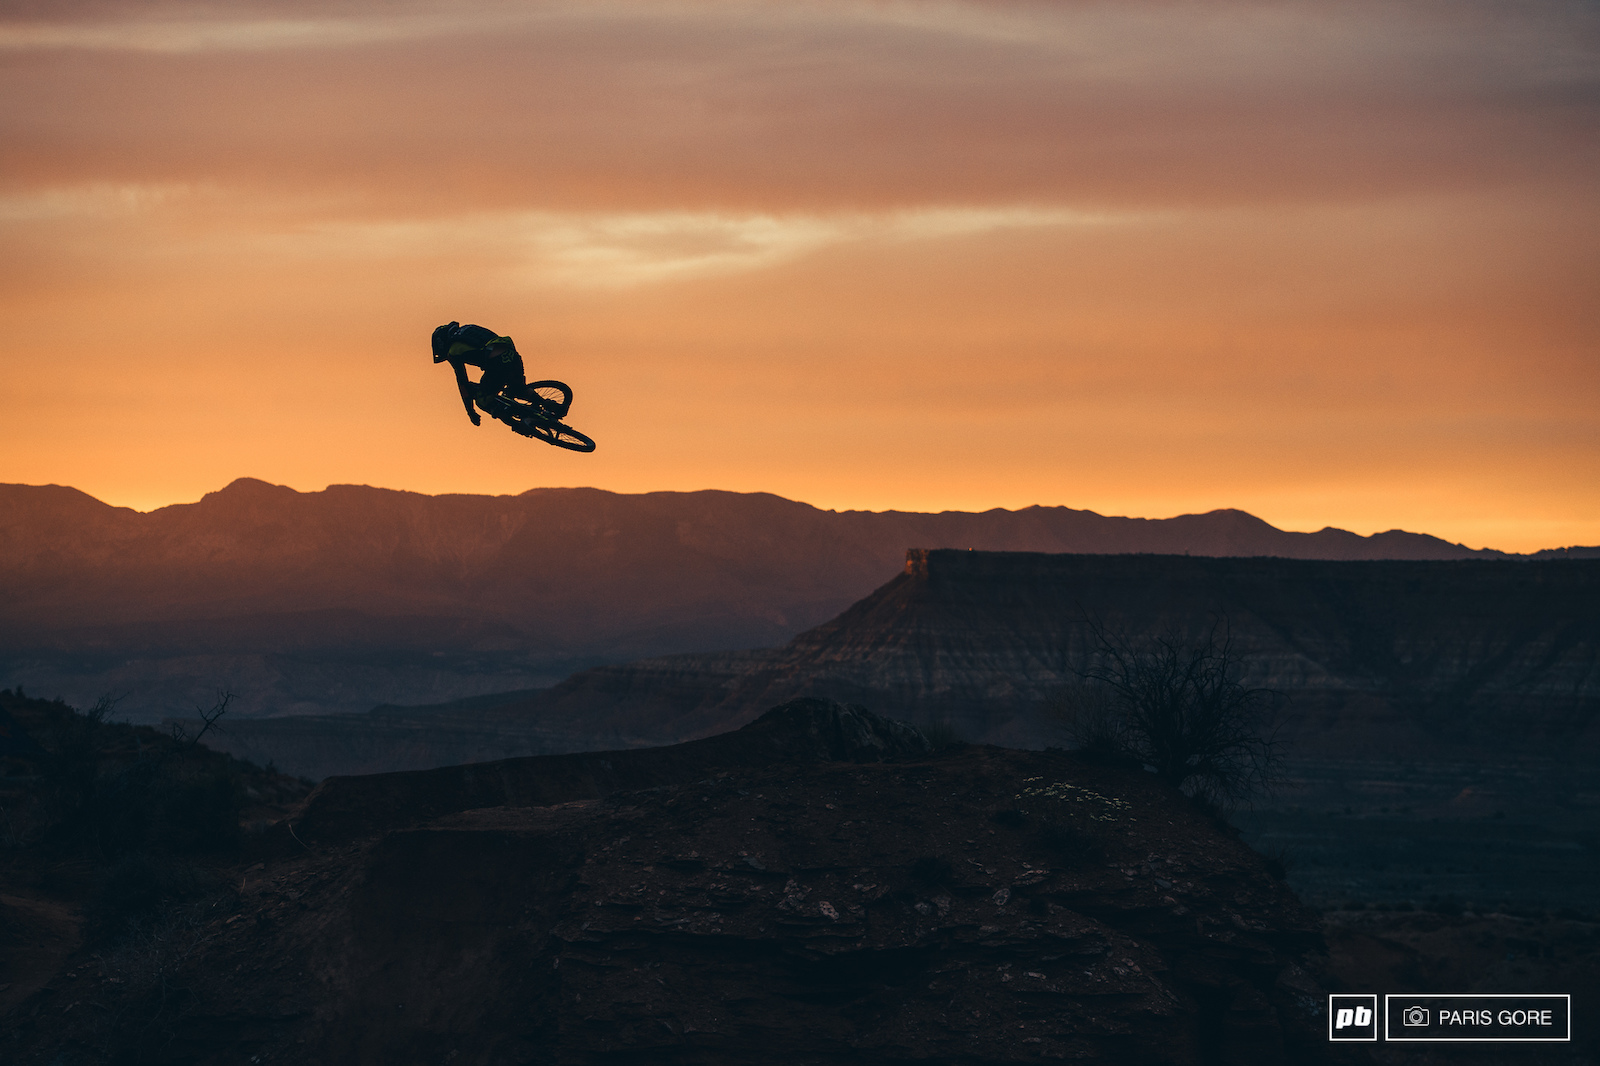 T-Mac sessioning his hip in the glowing last light over Zion.